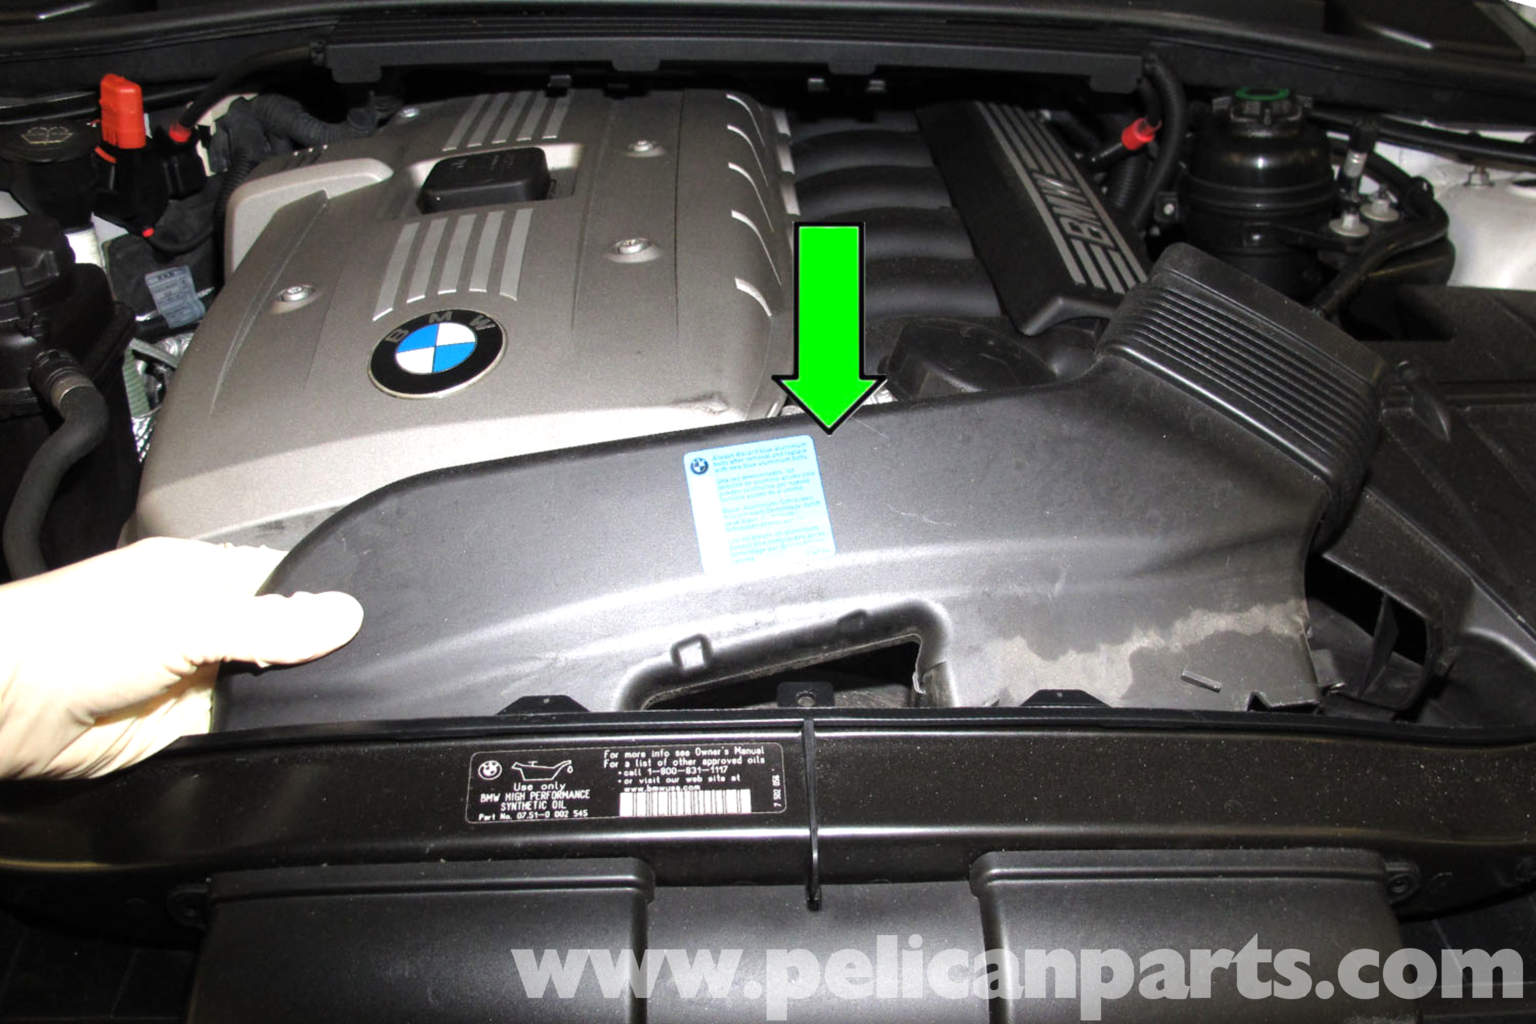 Bmw E90 Valvetronic Motor Replacement E91 E92 E93 Pelican 2008 750li Fuse Diagram Large Image